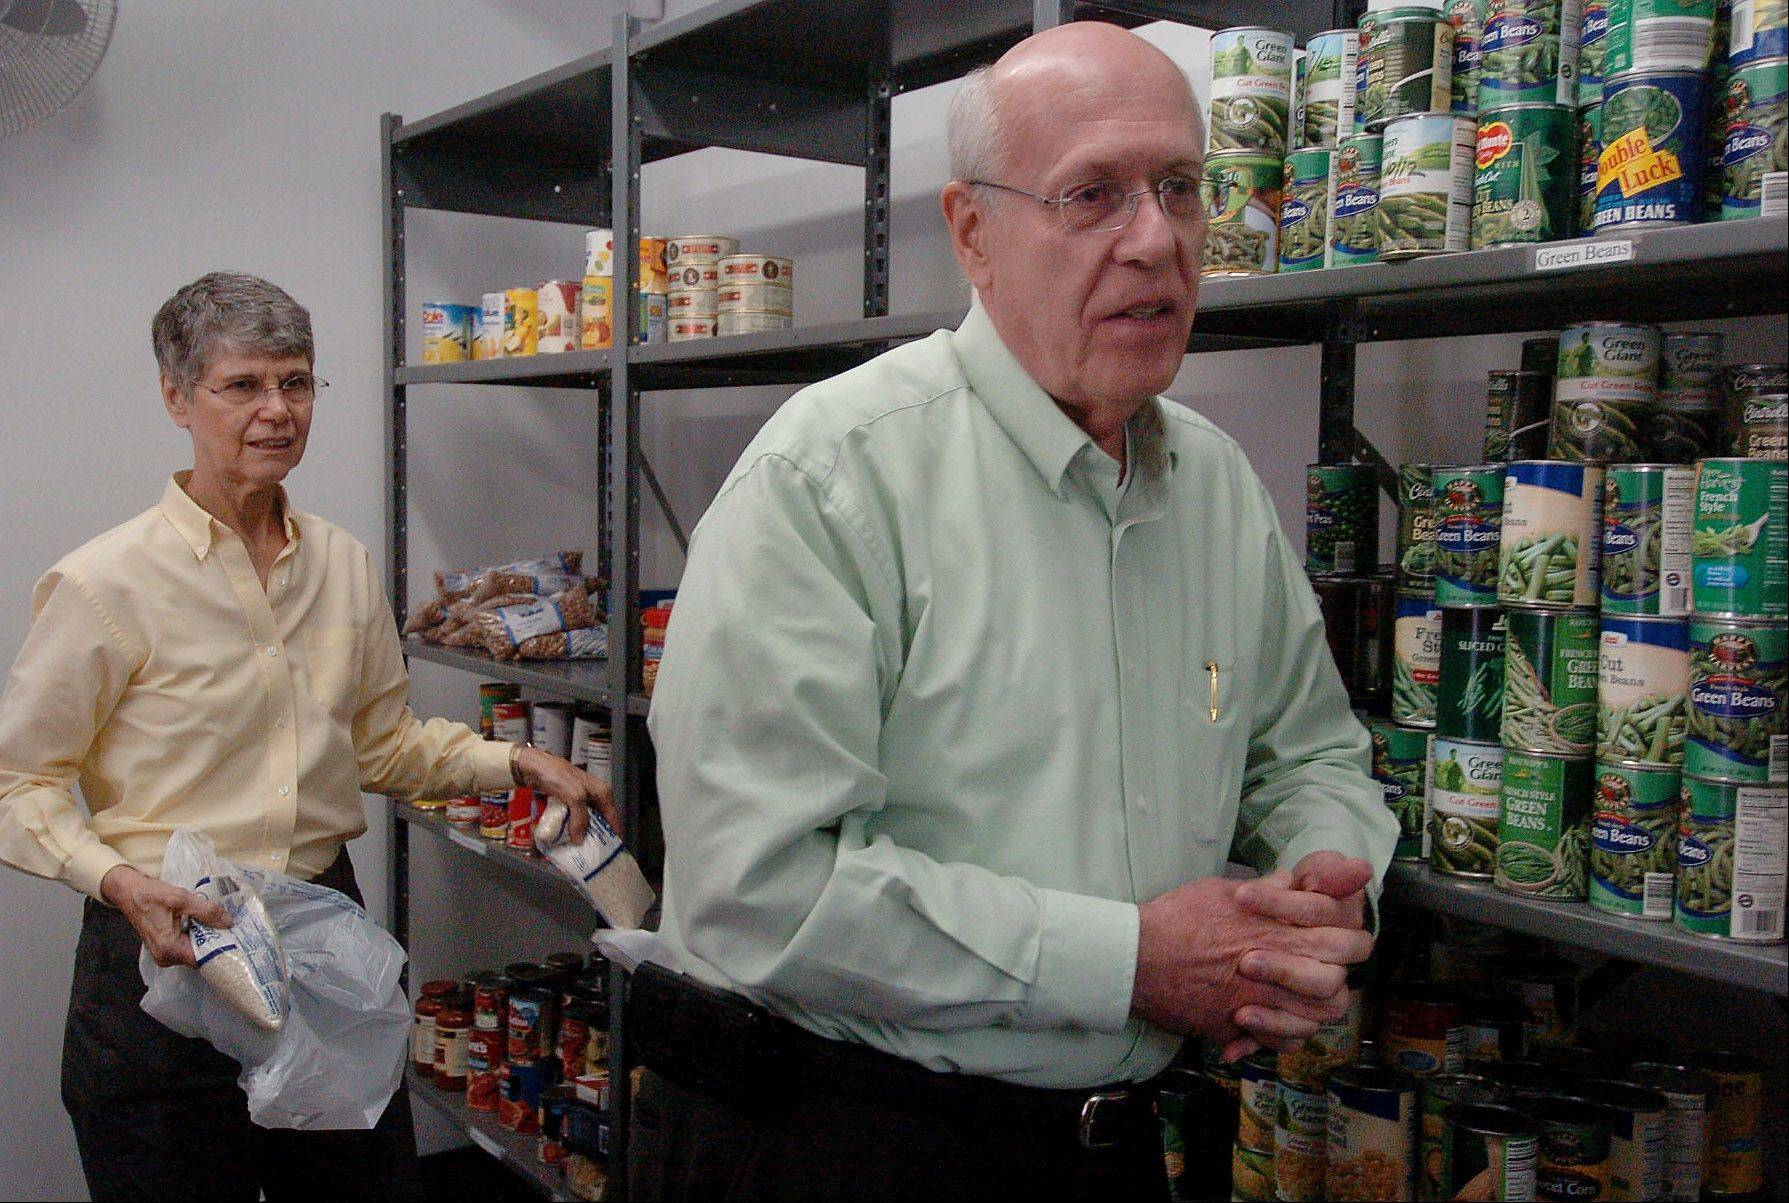 Barbara and Jim Bradley work at the new Wheeling food pantry that Jim has been working on for two years.